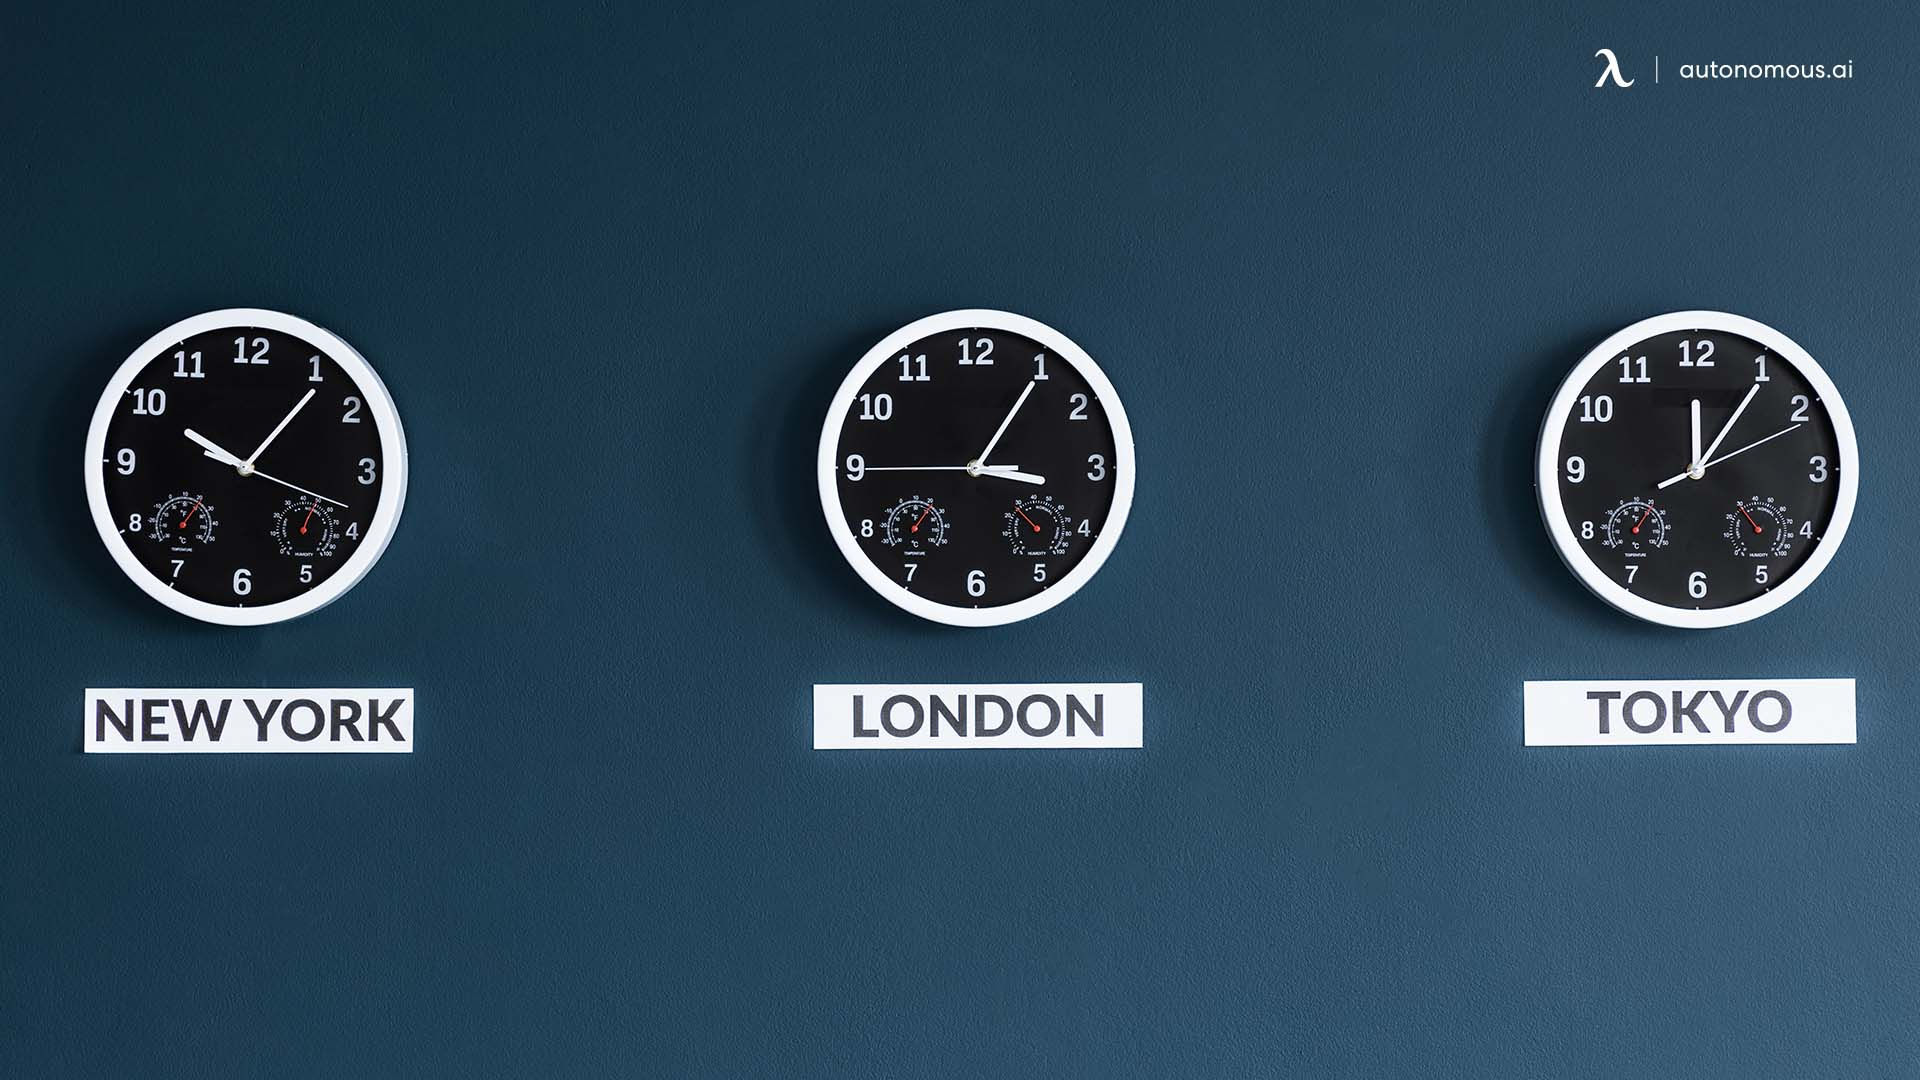 You don't consider time zones